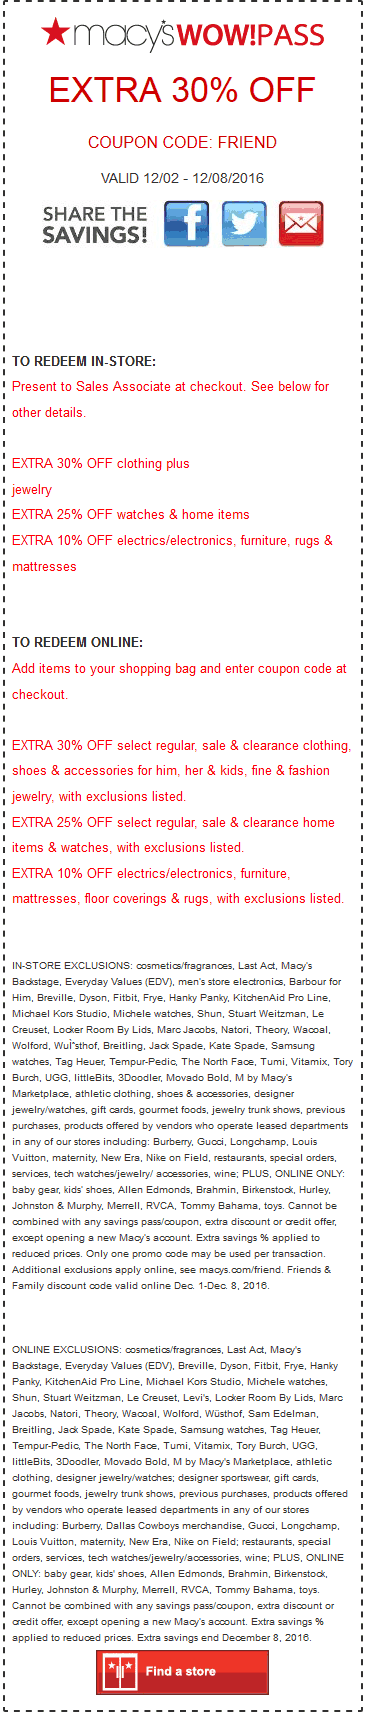 Macys Coupon March 2019 Extra 30% off at Macys, or online via promo code FRIEND